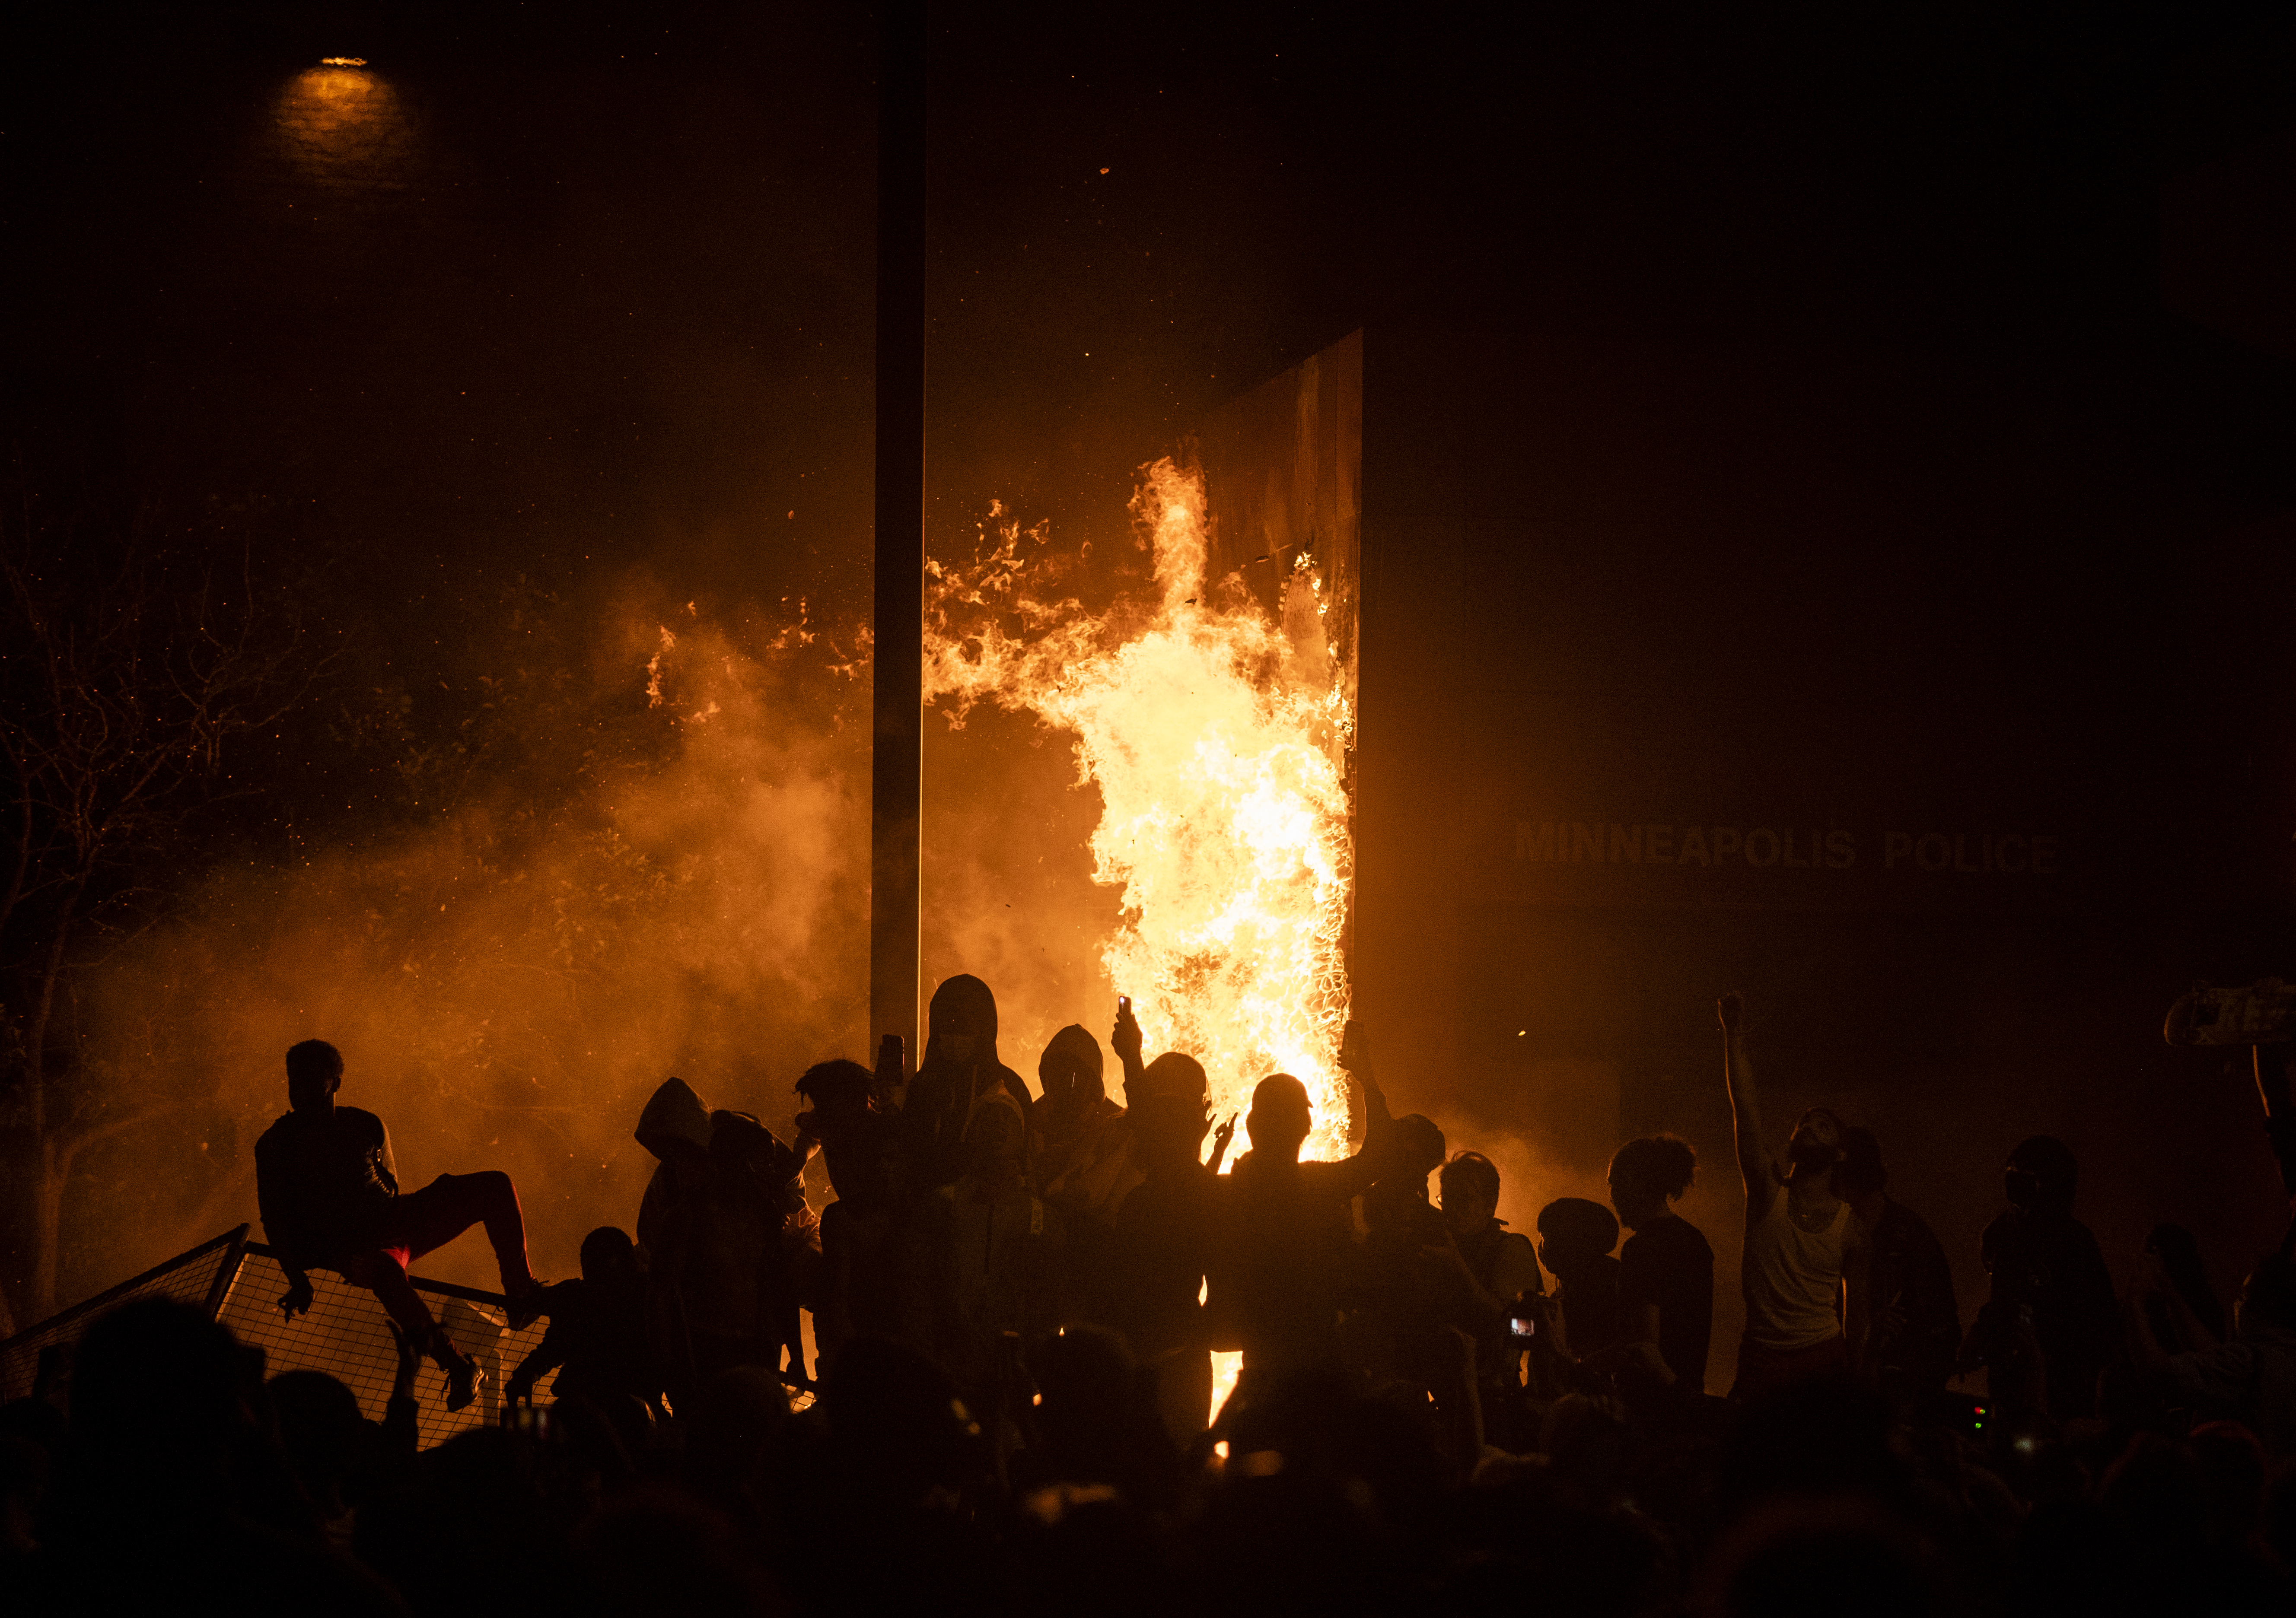 MINNEAPOLIS, MN - MAY 28: Protesters cheer as the Third Police Precinct burns behind them on May 28, 2020 in Minneapolis, Minnesota. As unrest continues after the death of George Floyd police abandoned the precinct building, allowing protesters to set fire to it. (Photo by Stephen Maturen/Getty Images)